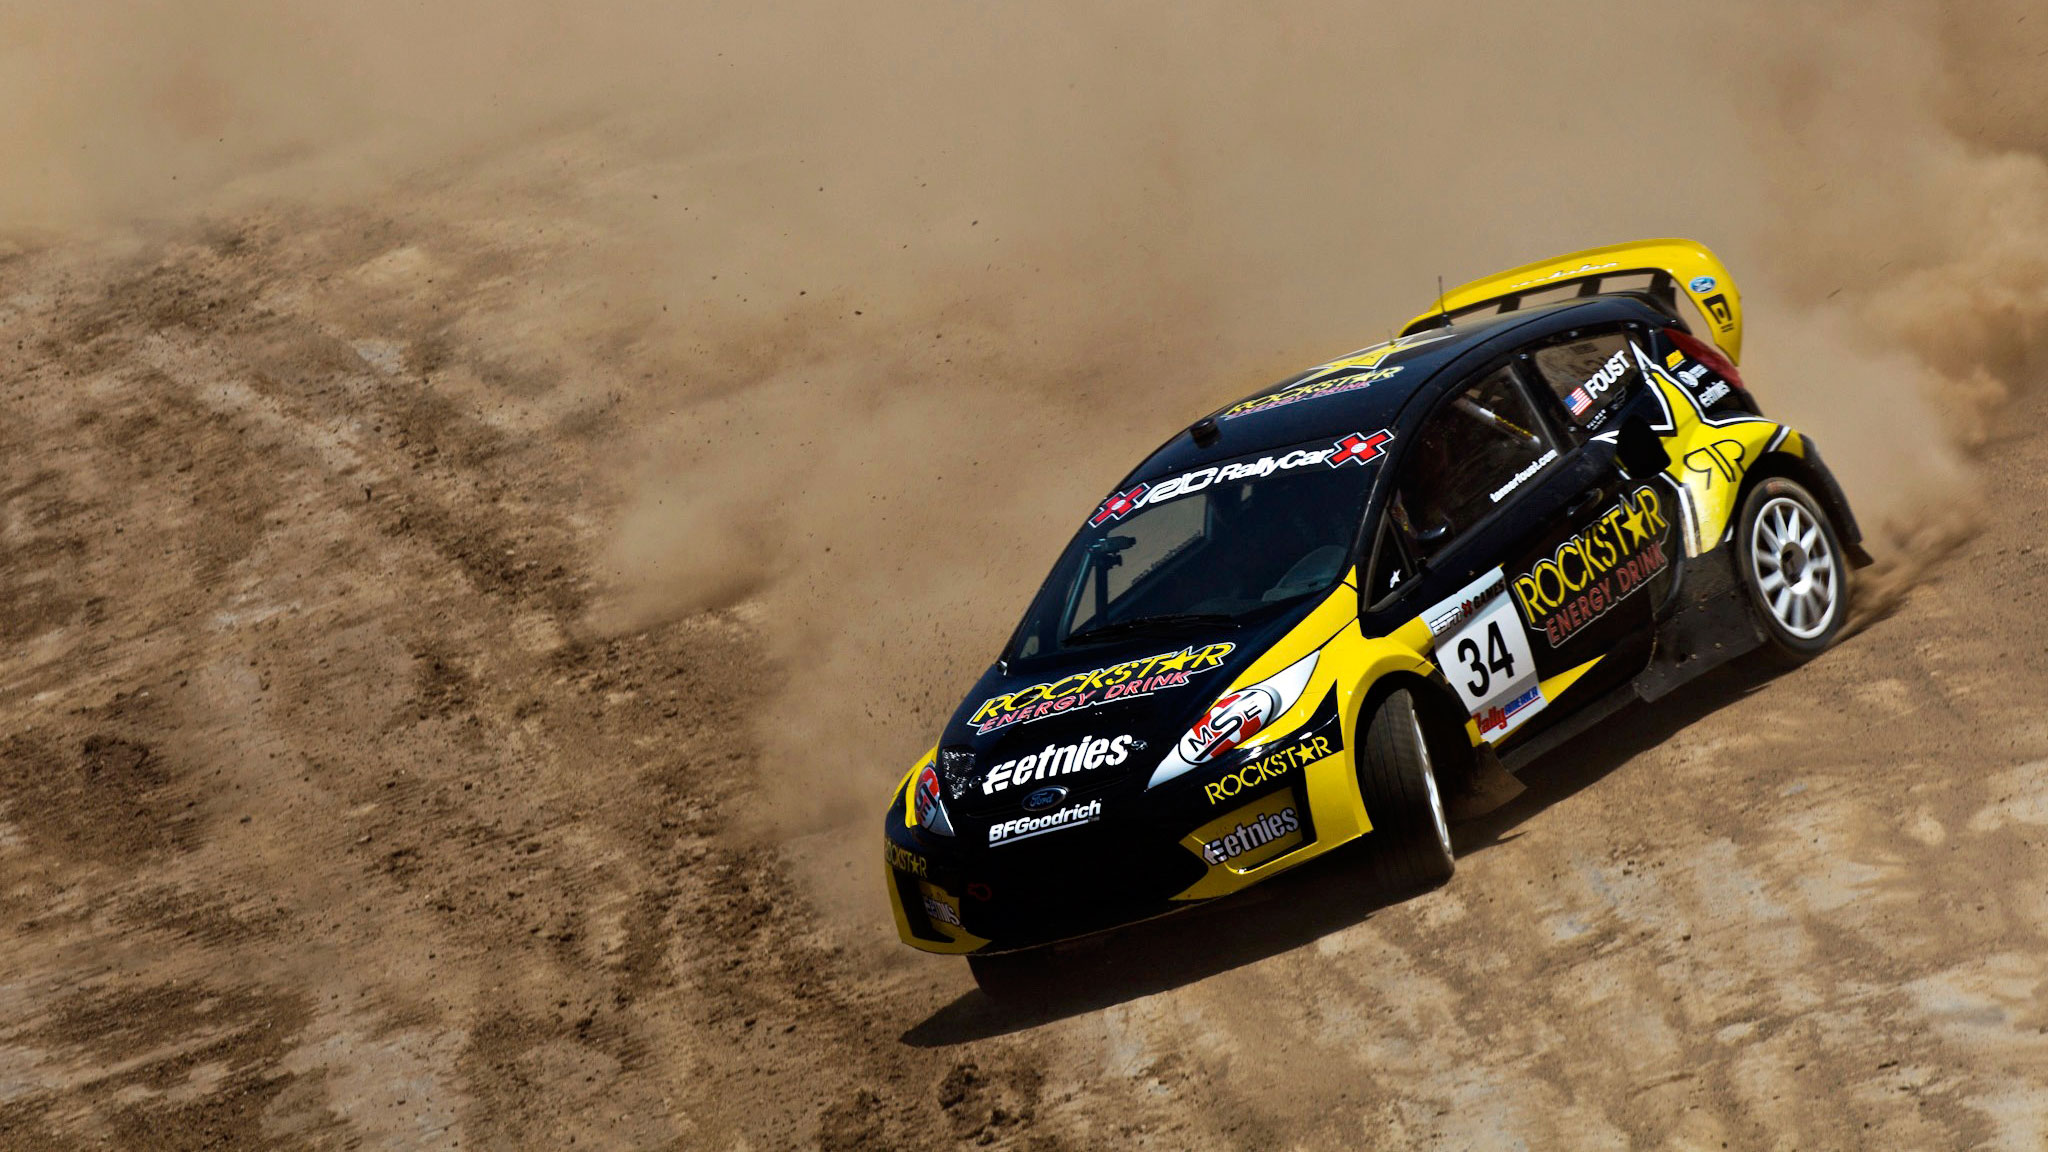 The high-spec class of cars used in X Games RallyCross are aptly named Supercars.